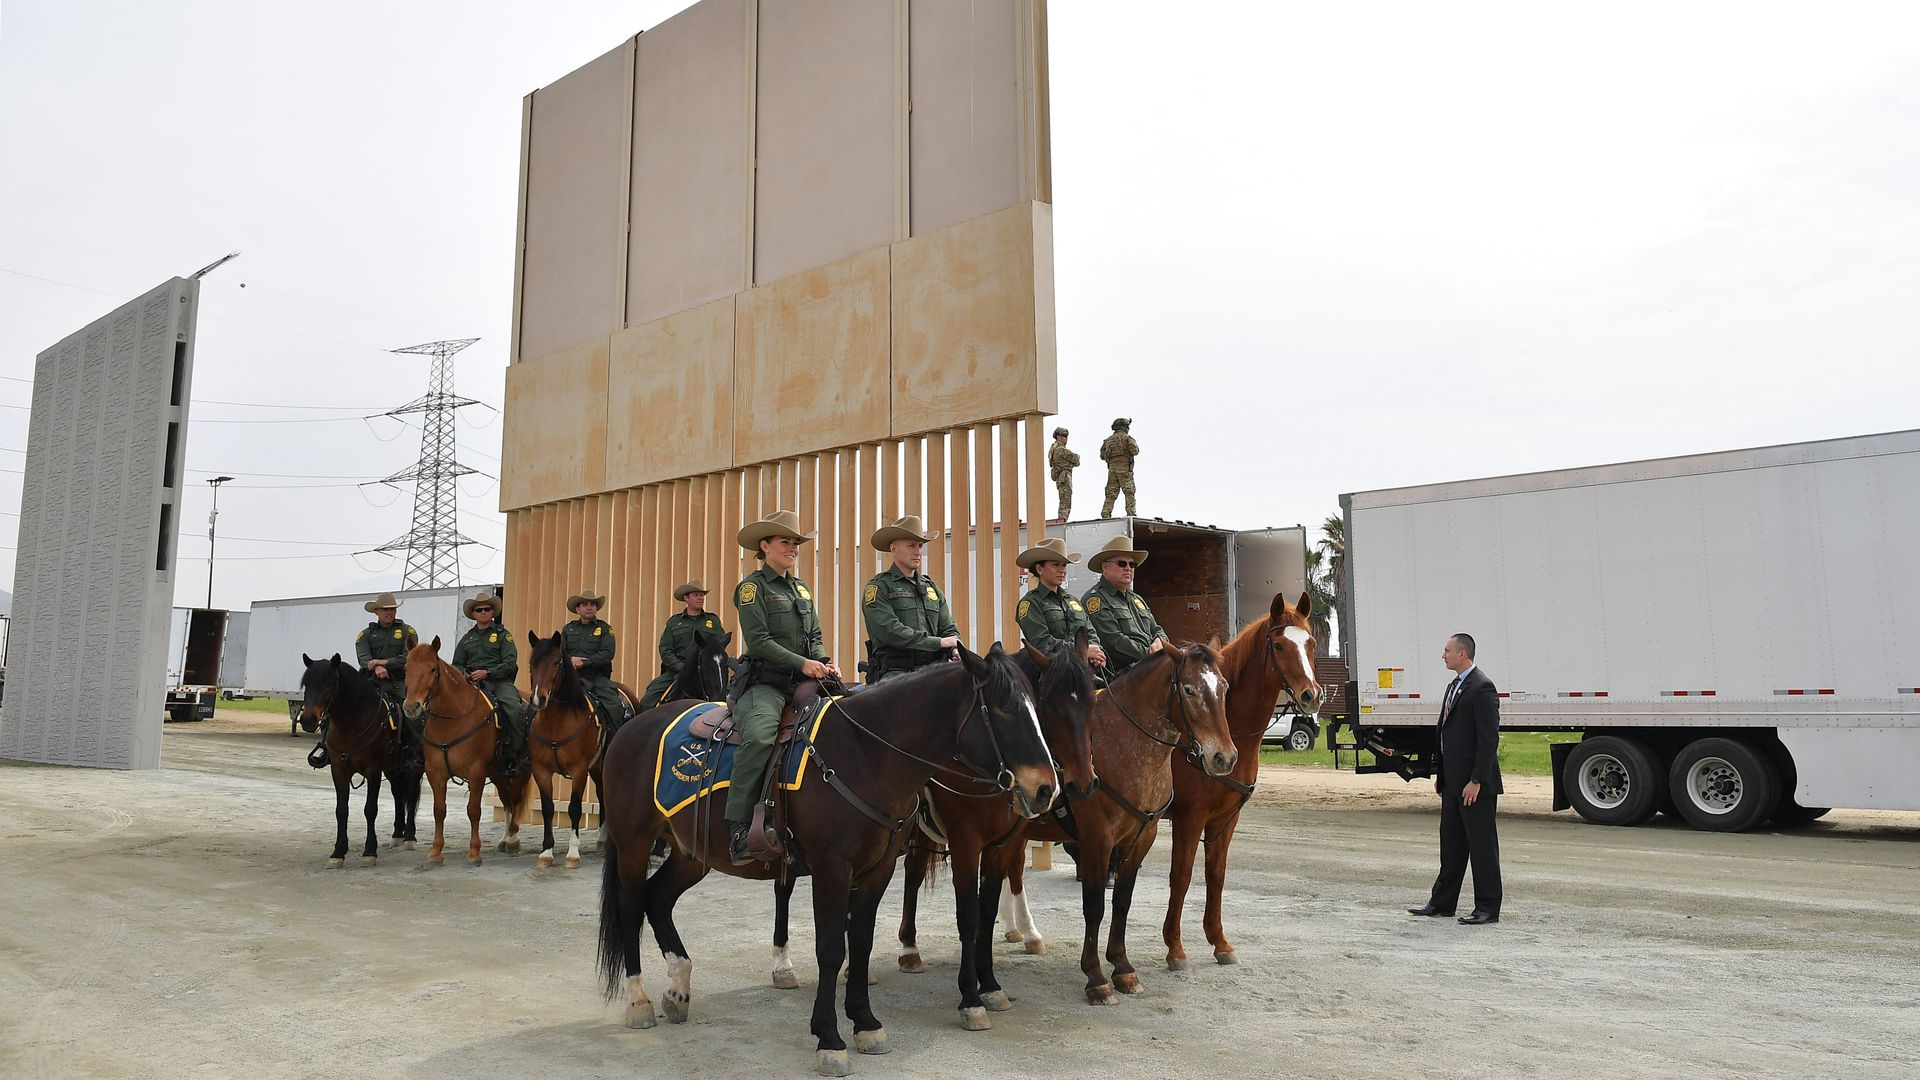 Mounted Border Patrol agents on horseback in front of a prototype of Trump's border wall